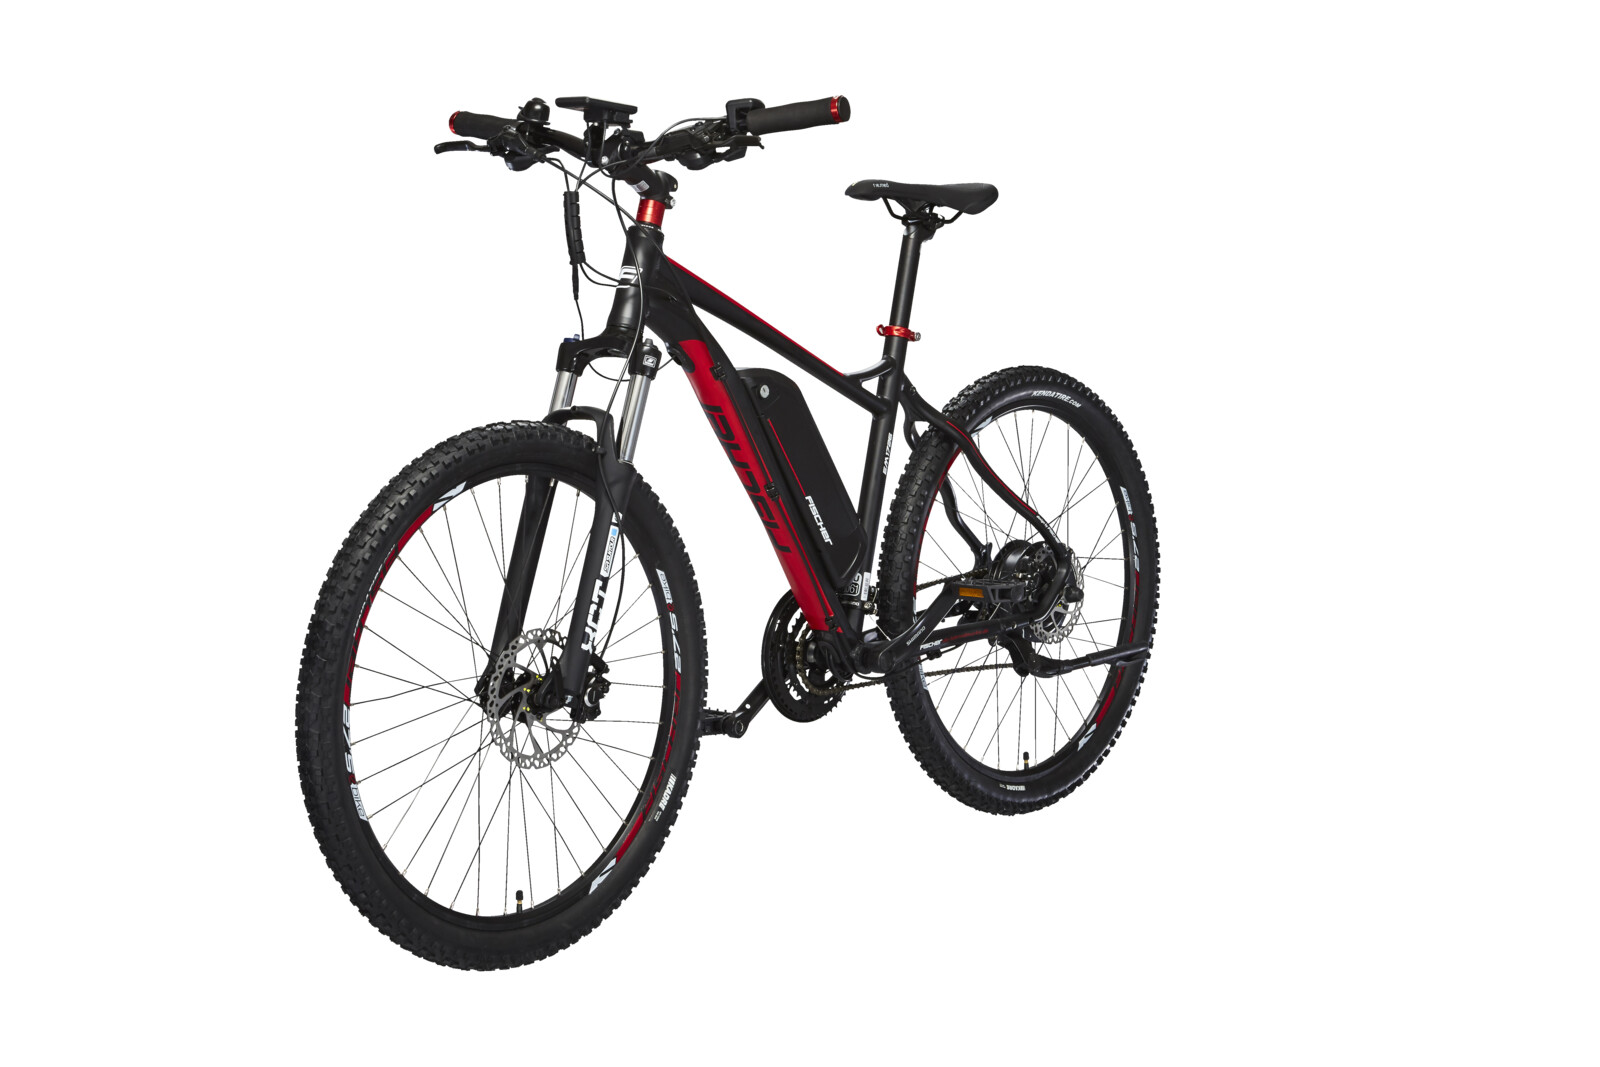 fischer em 1726 s1 mountainbike 27 5 zoll 48 cm mtb. Black Bedroom Furniture Sets. Home Design Ideas